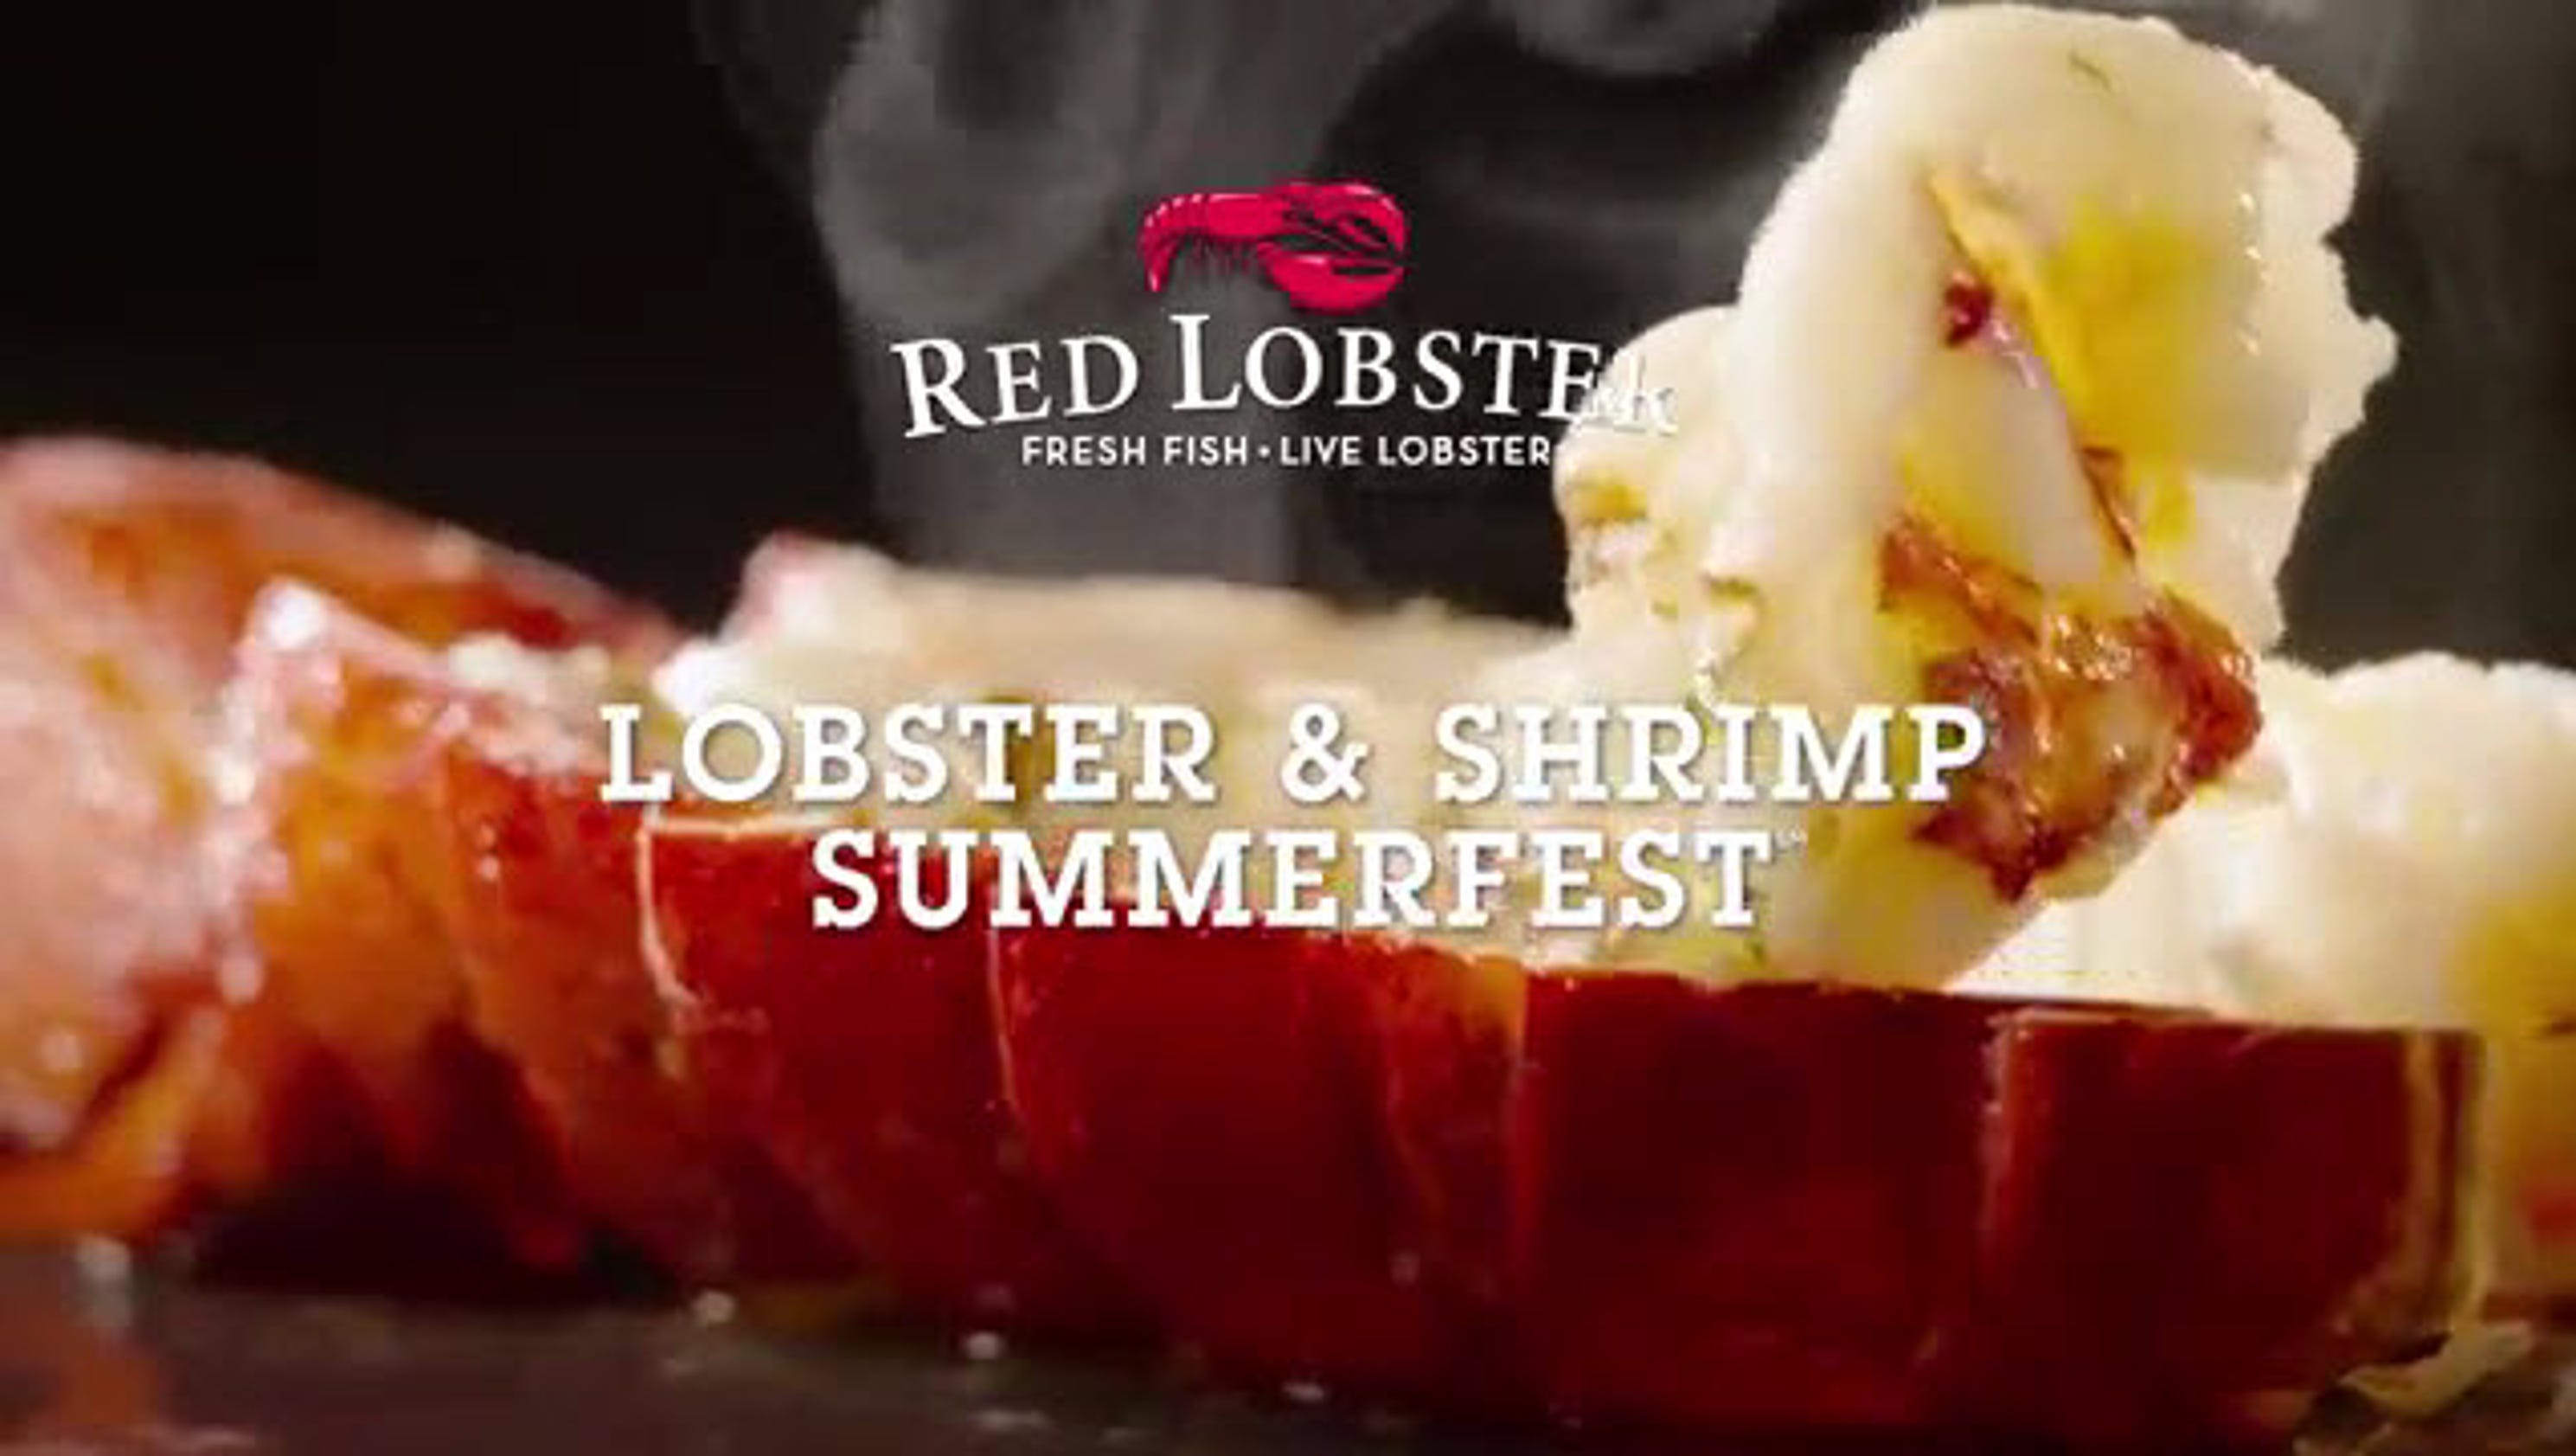 Restaurants That Deliver In Leton Wi Best Me Red Lobster Wisconsin Images And Fish